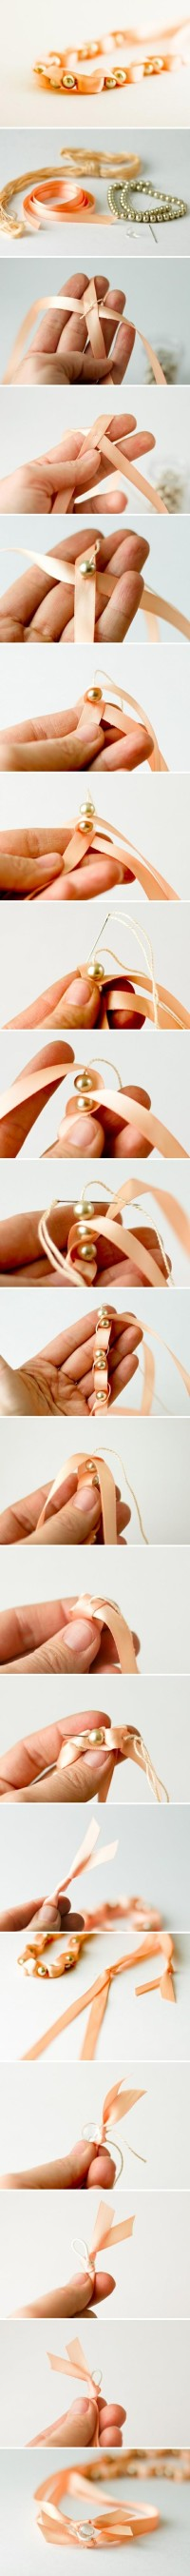 DIY Bracelet And Necklace